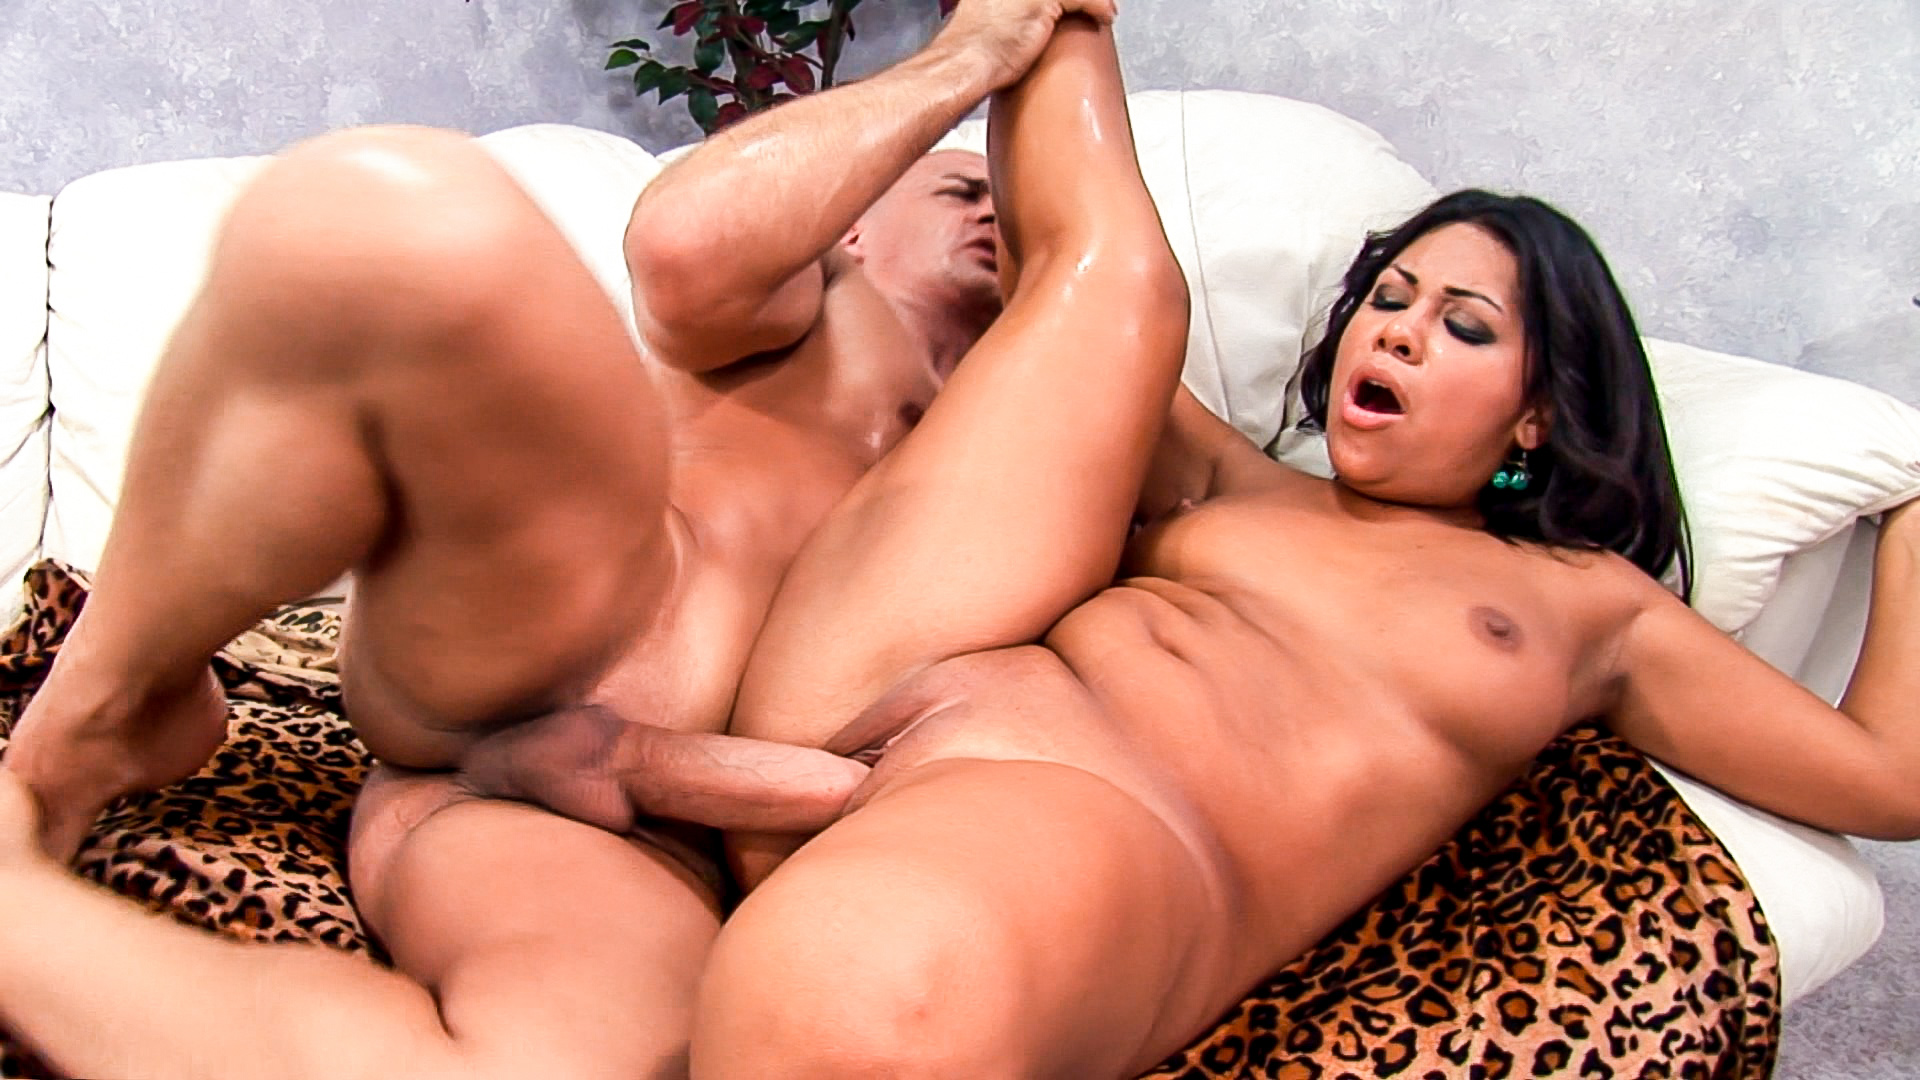 hot latina chick rides a huge dick, and screams until he blows his load right in her face.